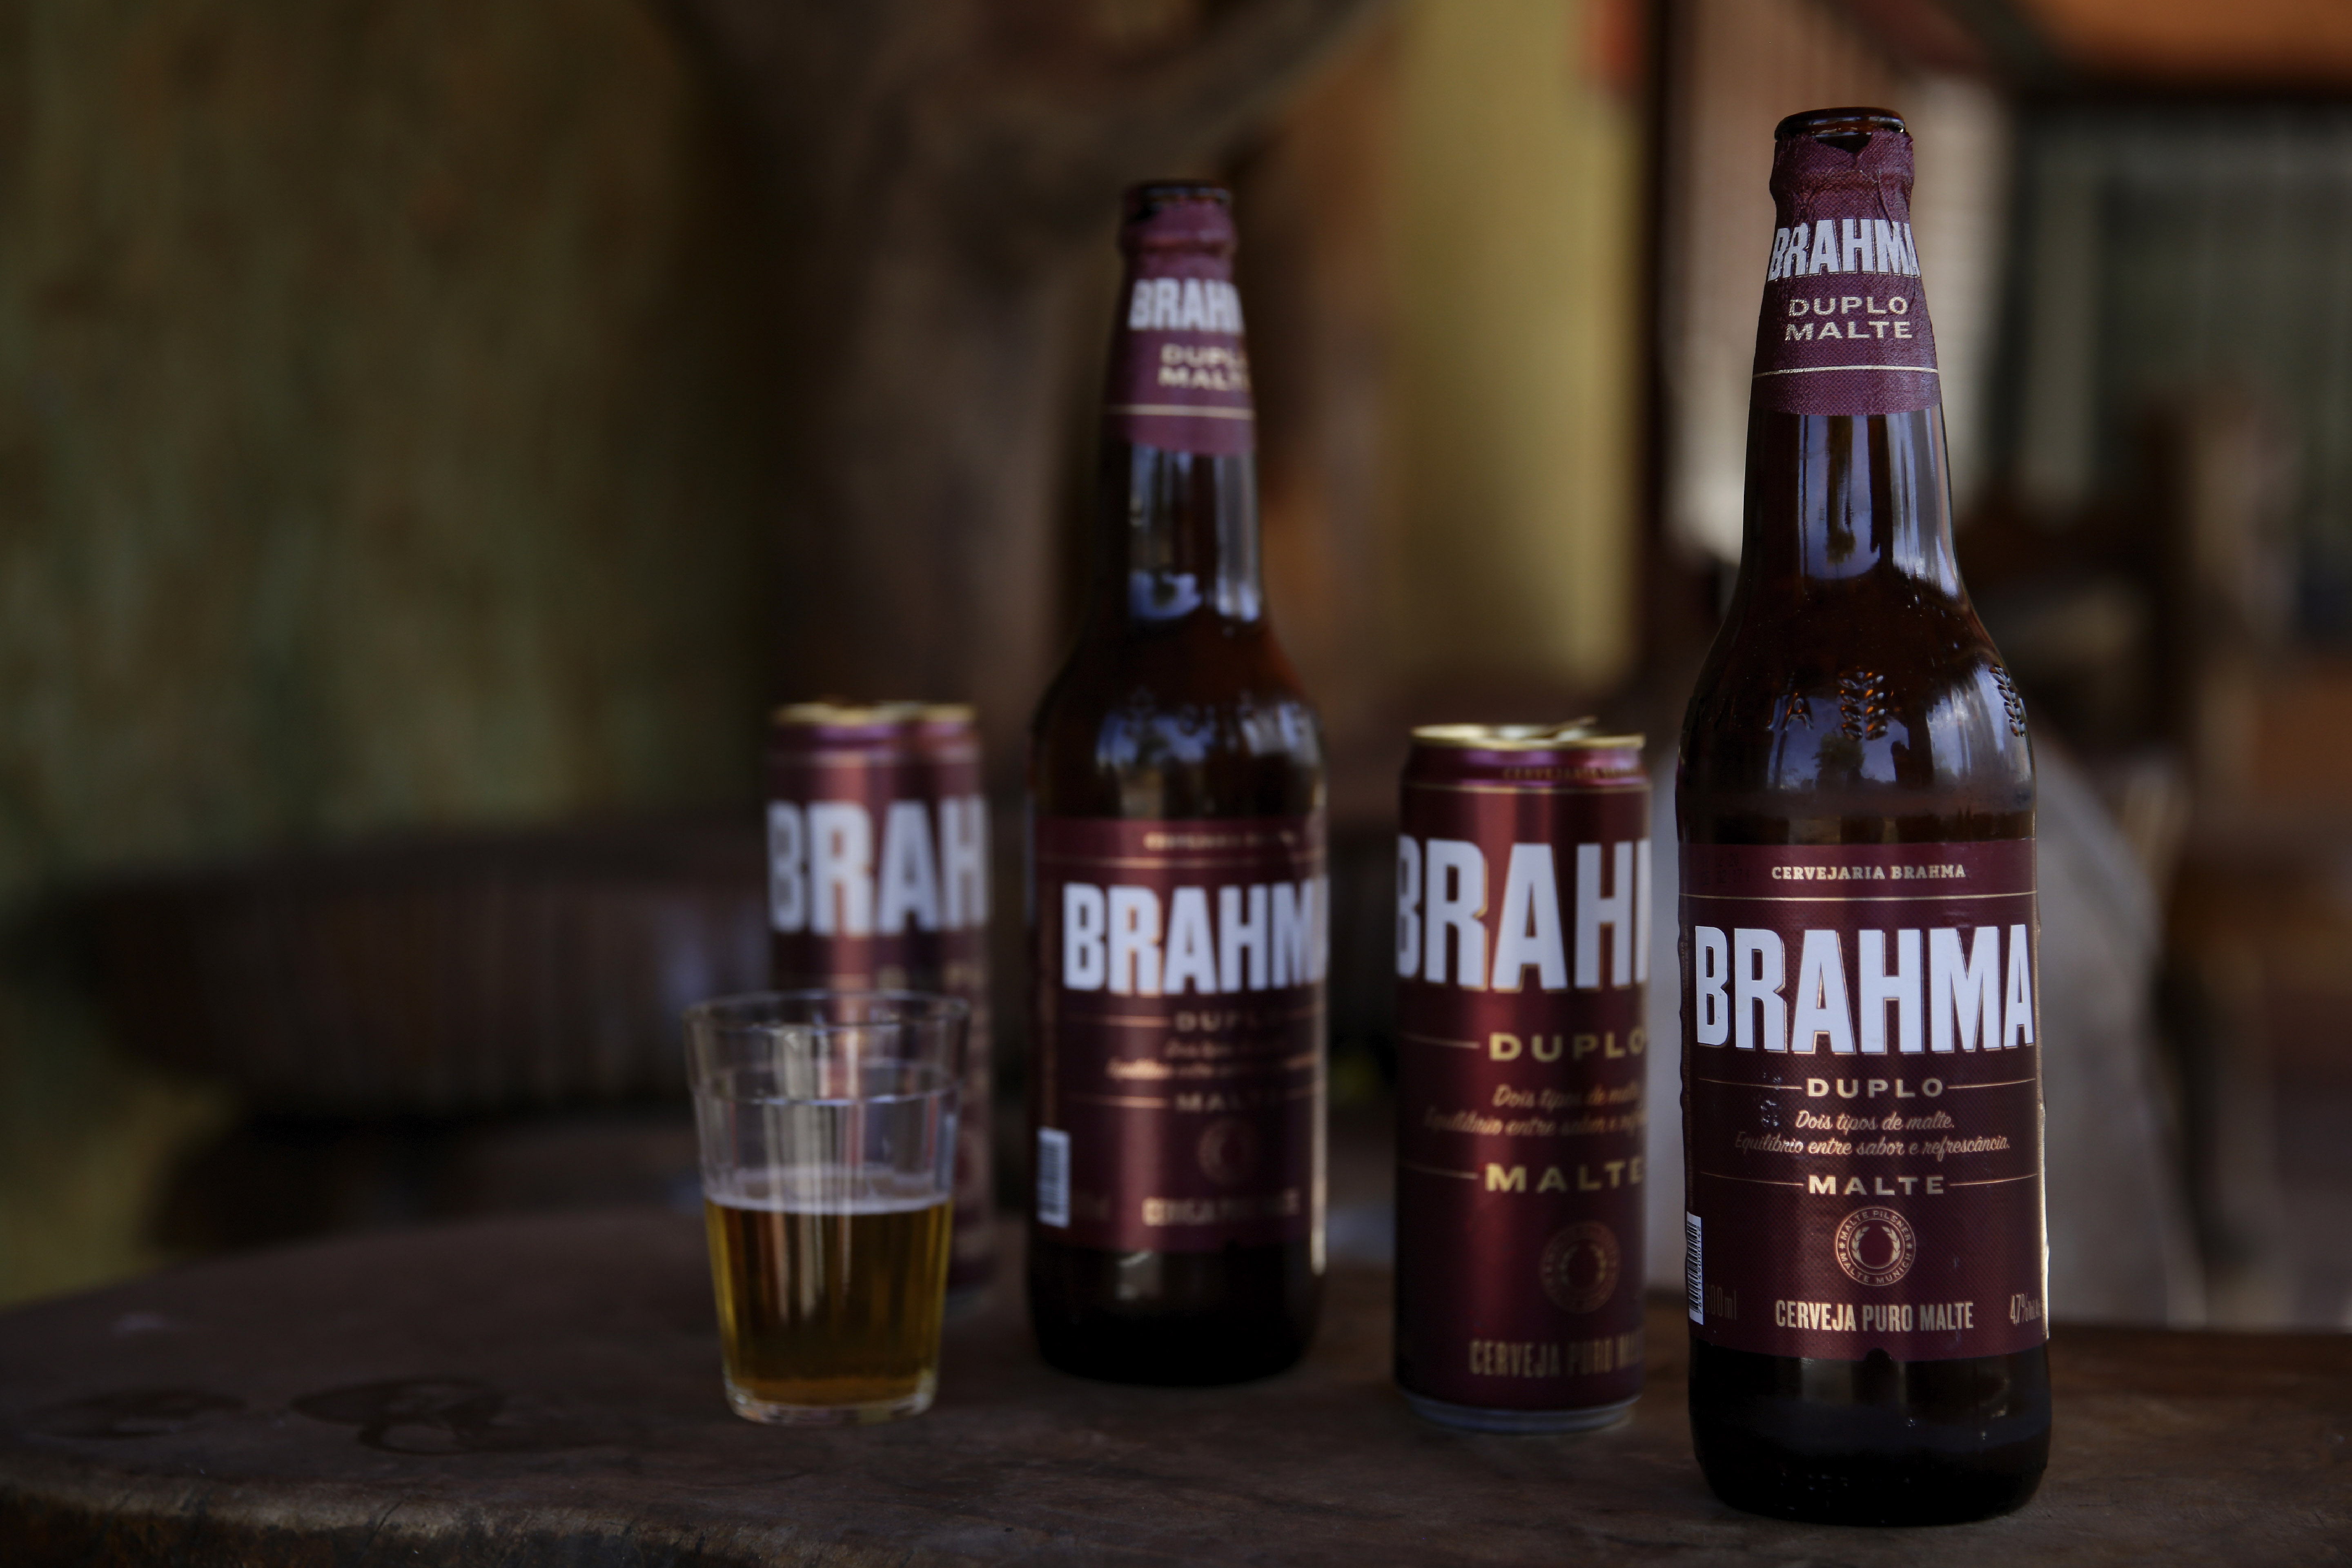 Brahma beer is displayed at a bar that's open for deliveries only amid the COVID-19 pandemic in Brasilia, Brazil.